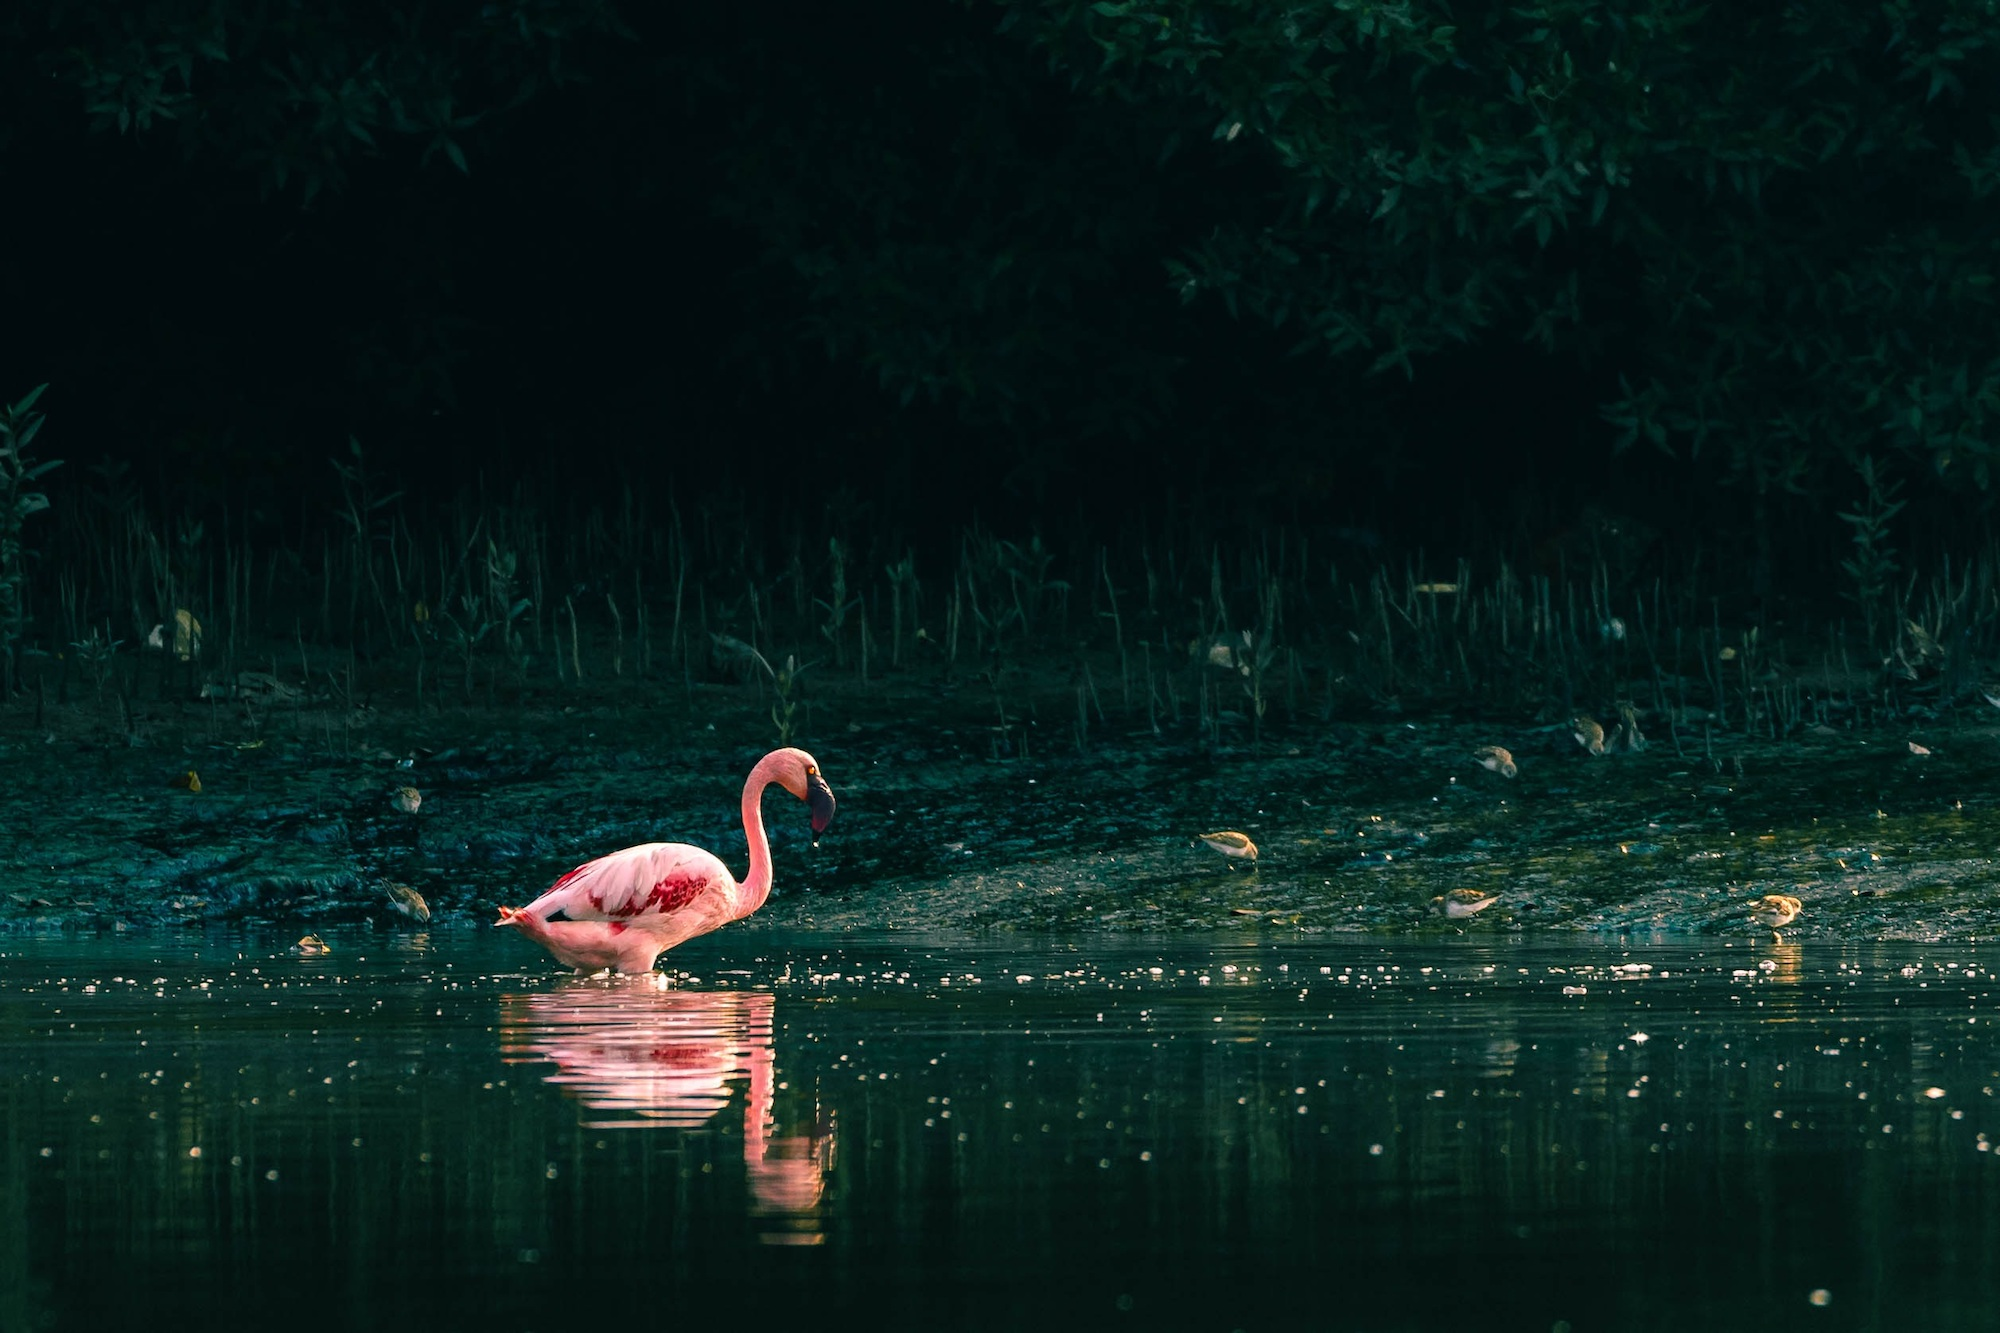 Lone flamingo in the water